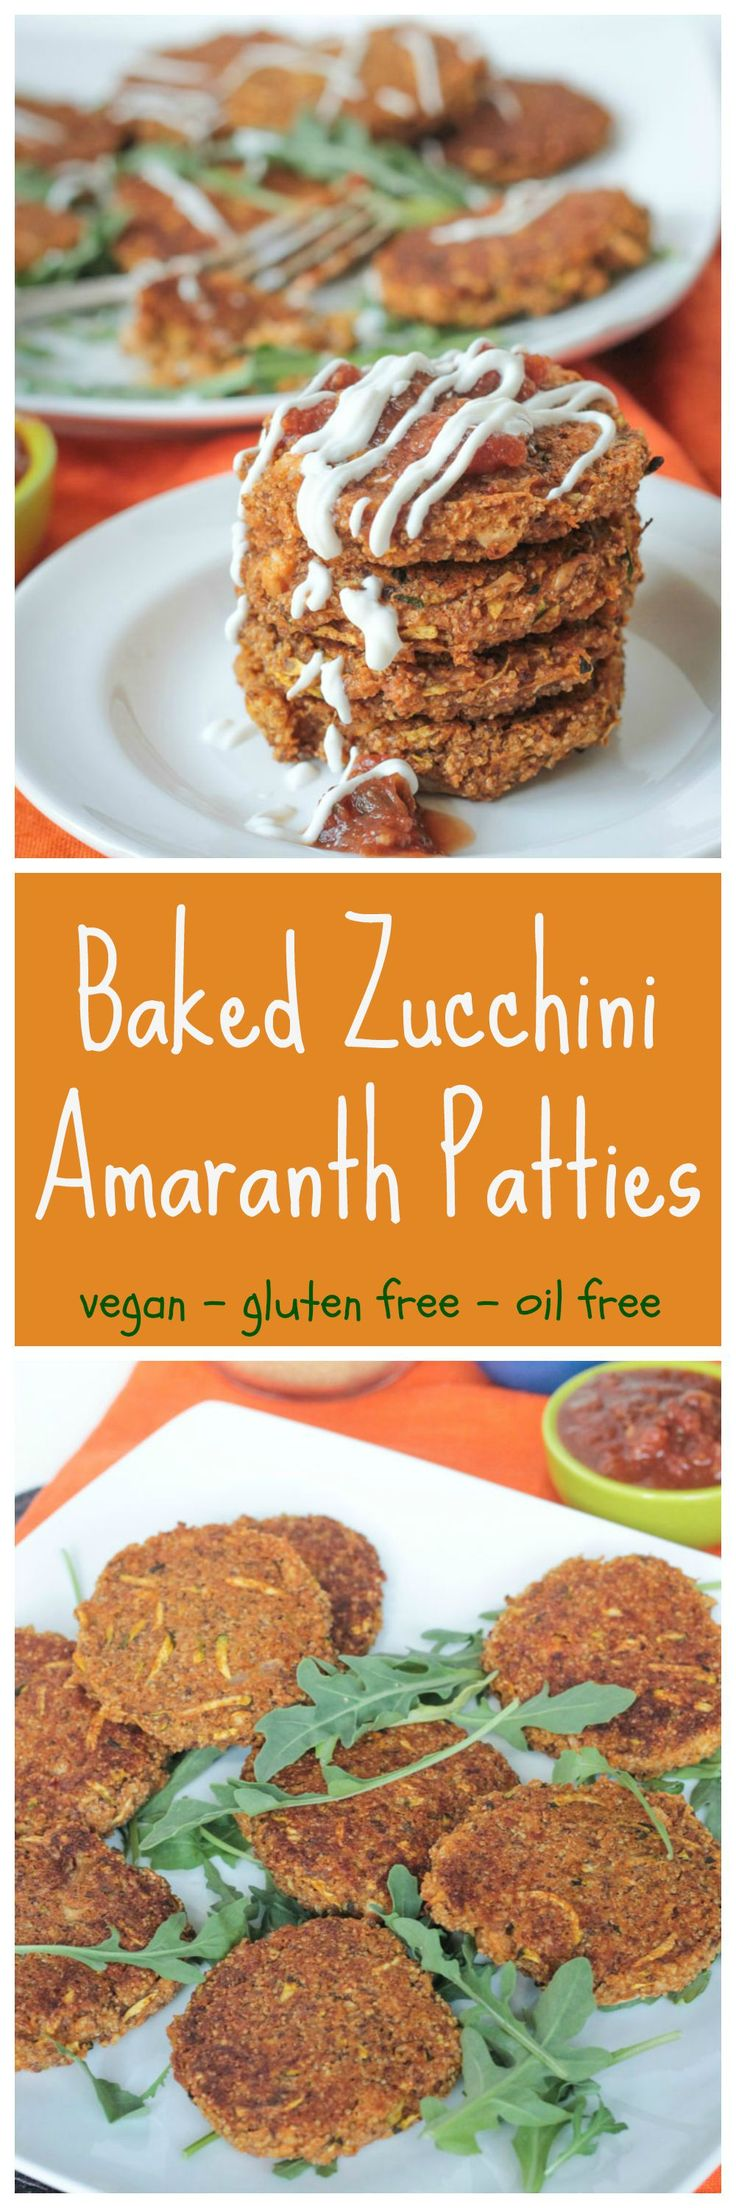 Baked Zucchini Amaranth Patties - crispy on the outside and creamy on the inside, these #glutenfree #oilfree patties are high in protein and need only 30 minutes to bake. A great way to use up your summer bounty of #zucchini too! The perfect #weeknightmeal! #vegan #dairyfree #amaranth #meatlessmonday #cleaneating